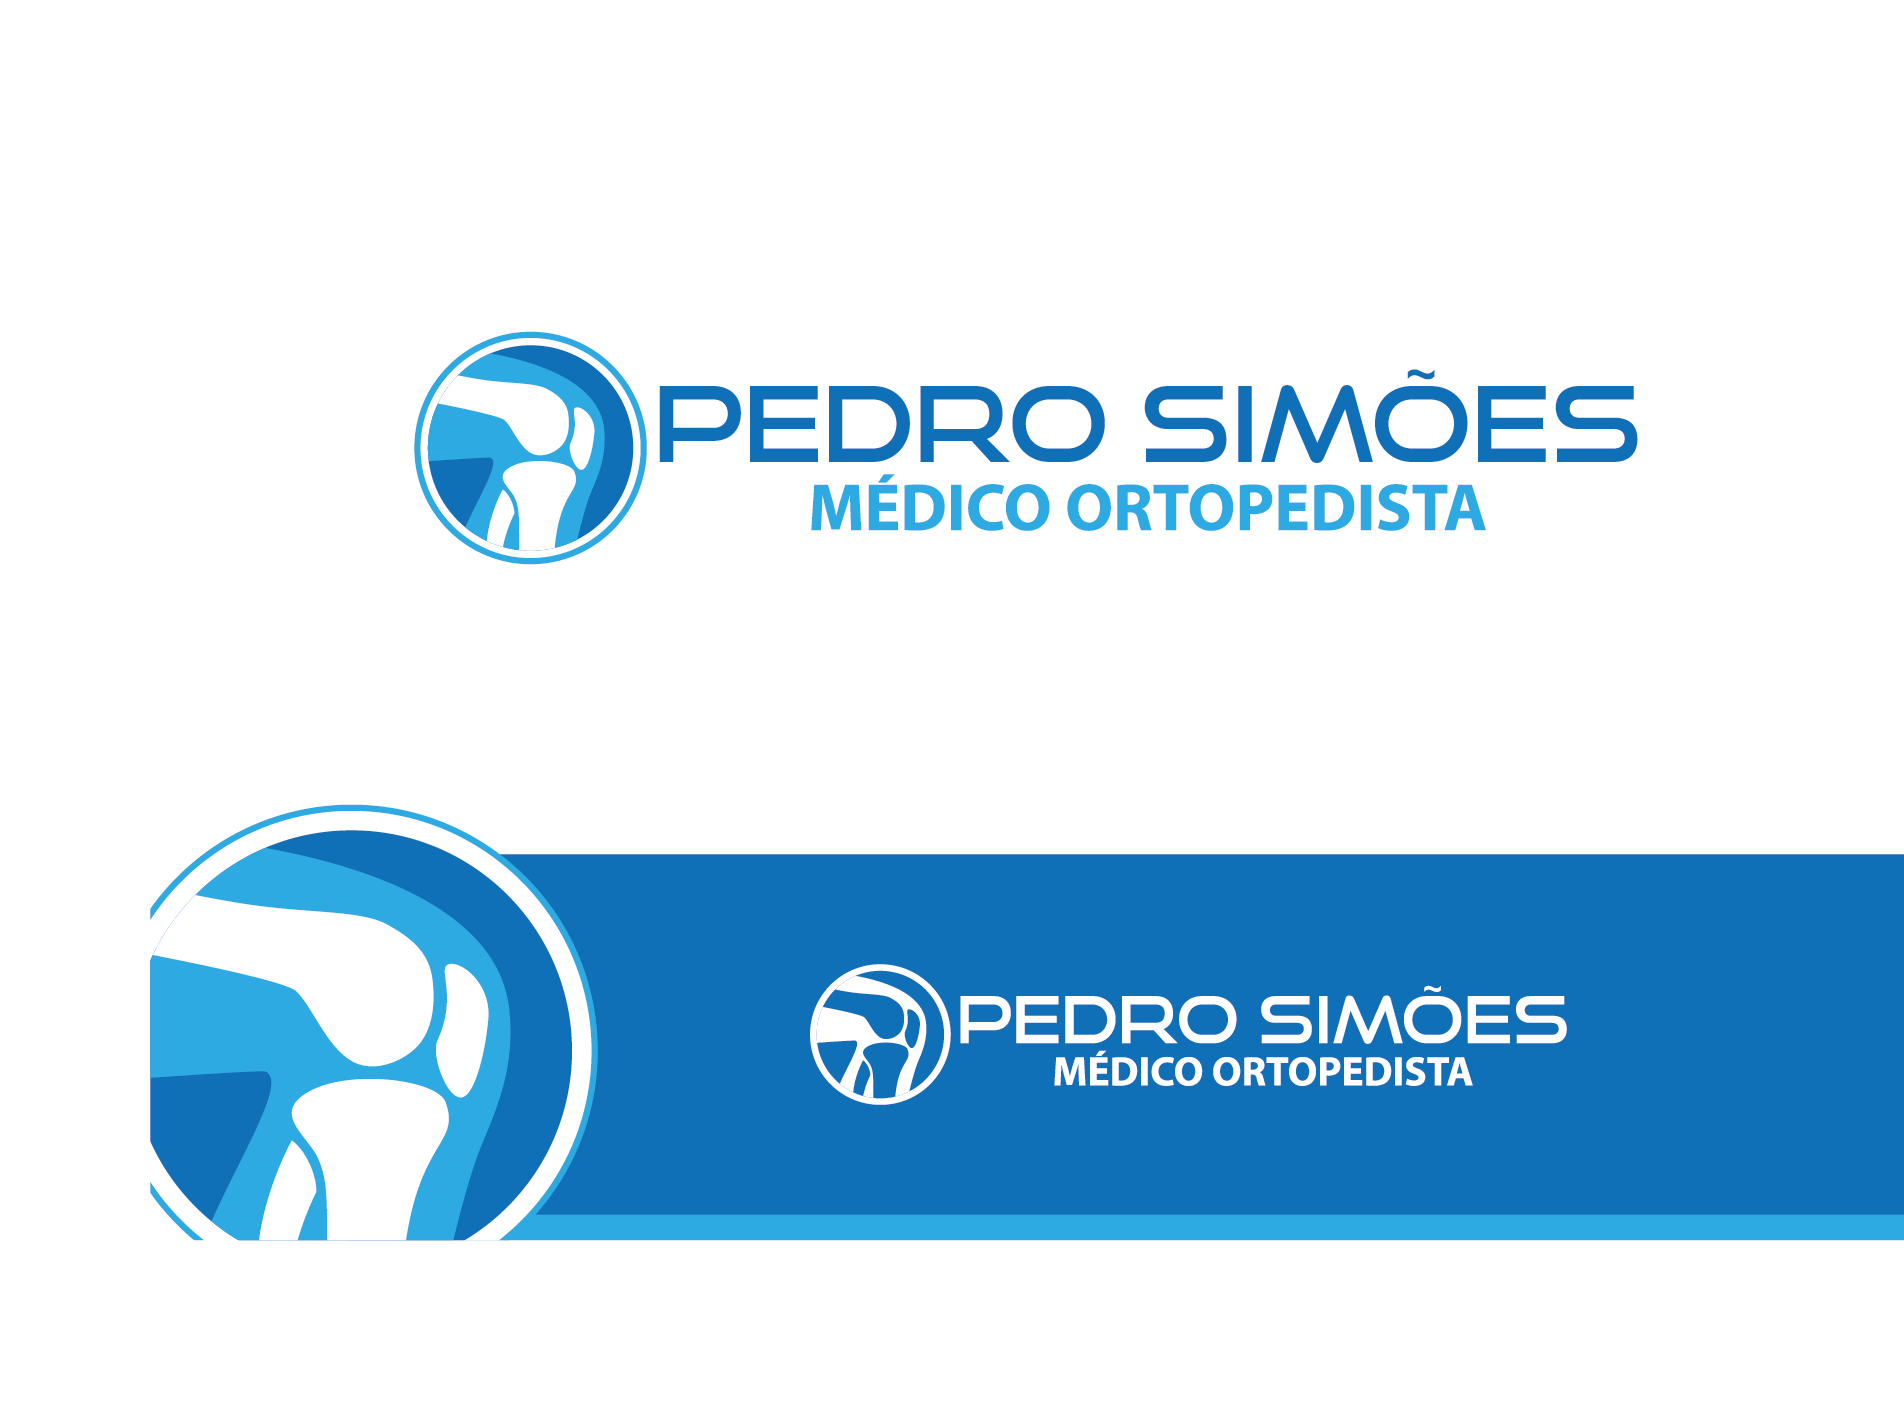 Pedro Simoes by Himawanrushx  a perfect logo for Medical & Pharmaceutical